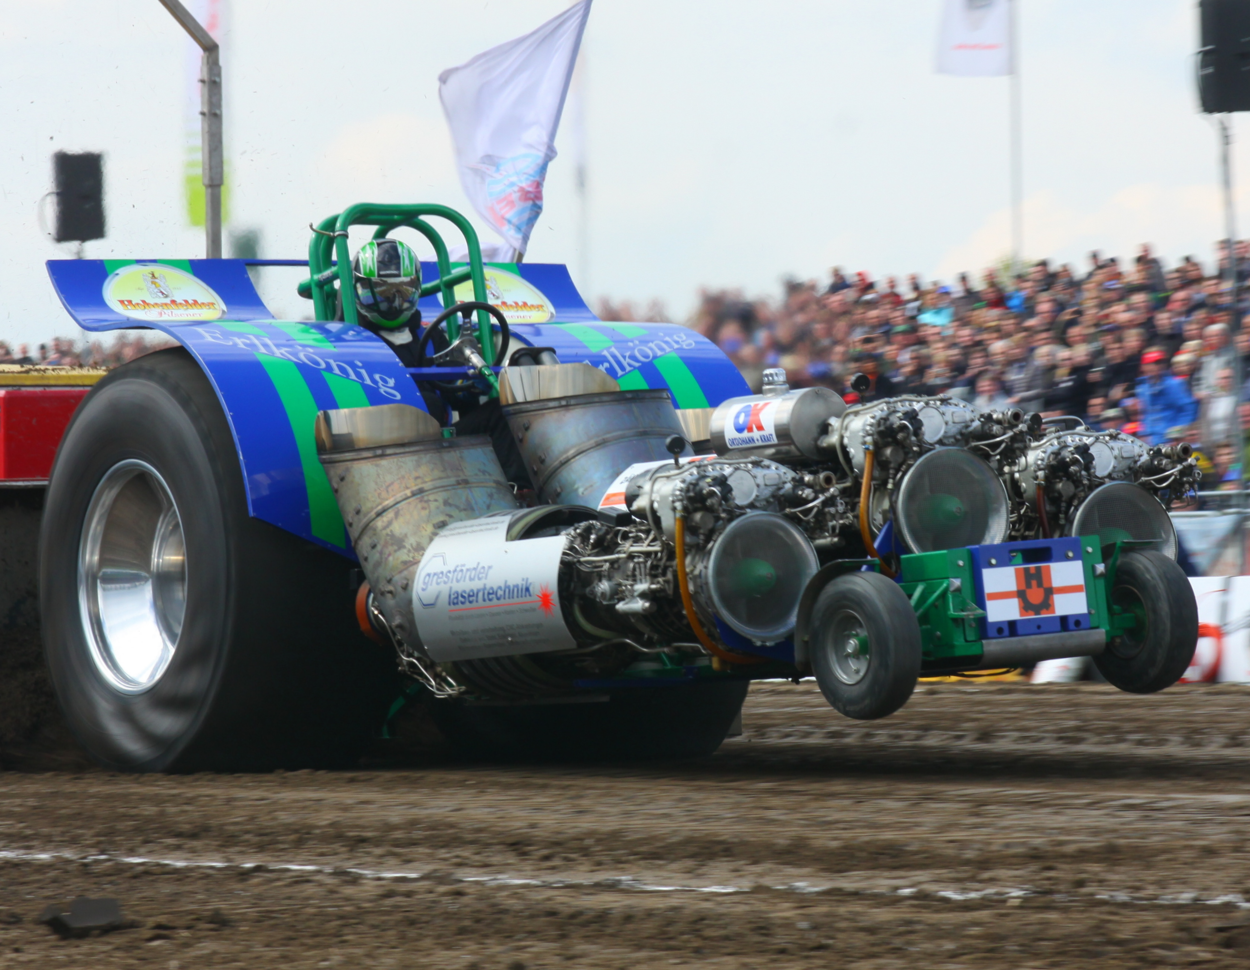 Tractor pulling krumbach 2020